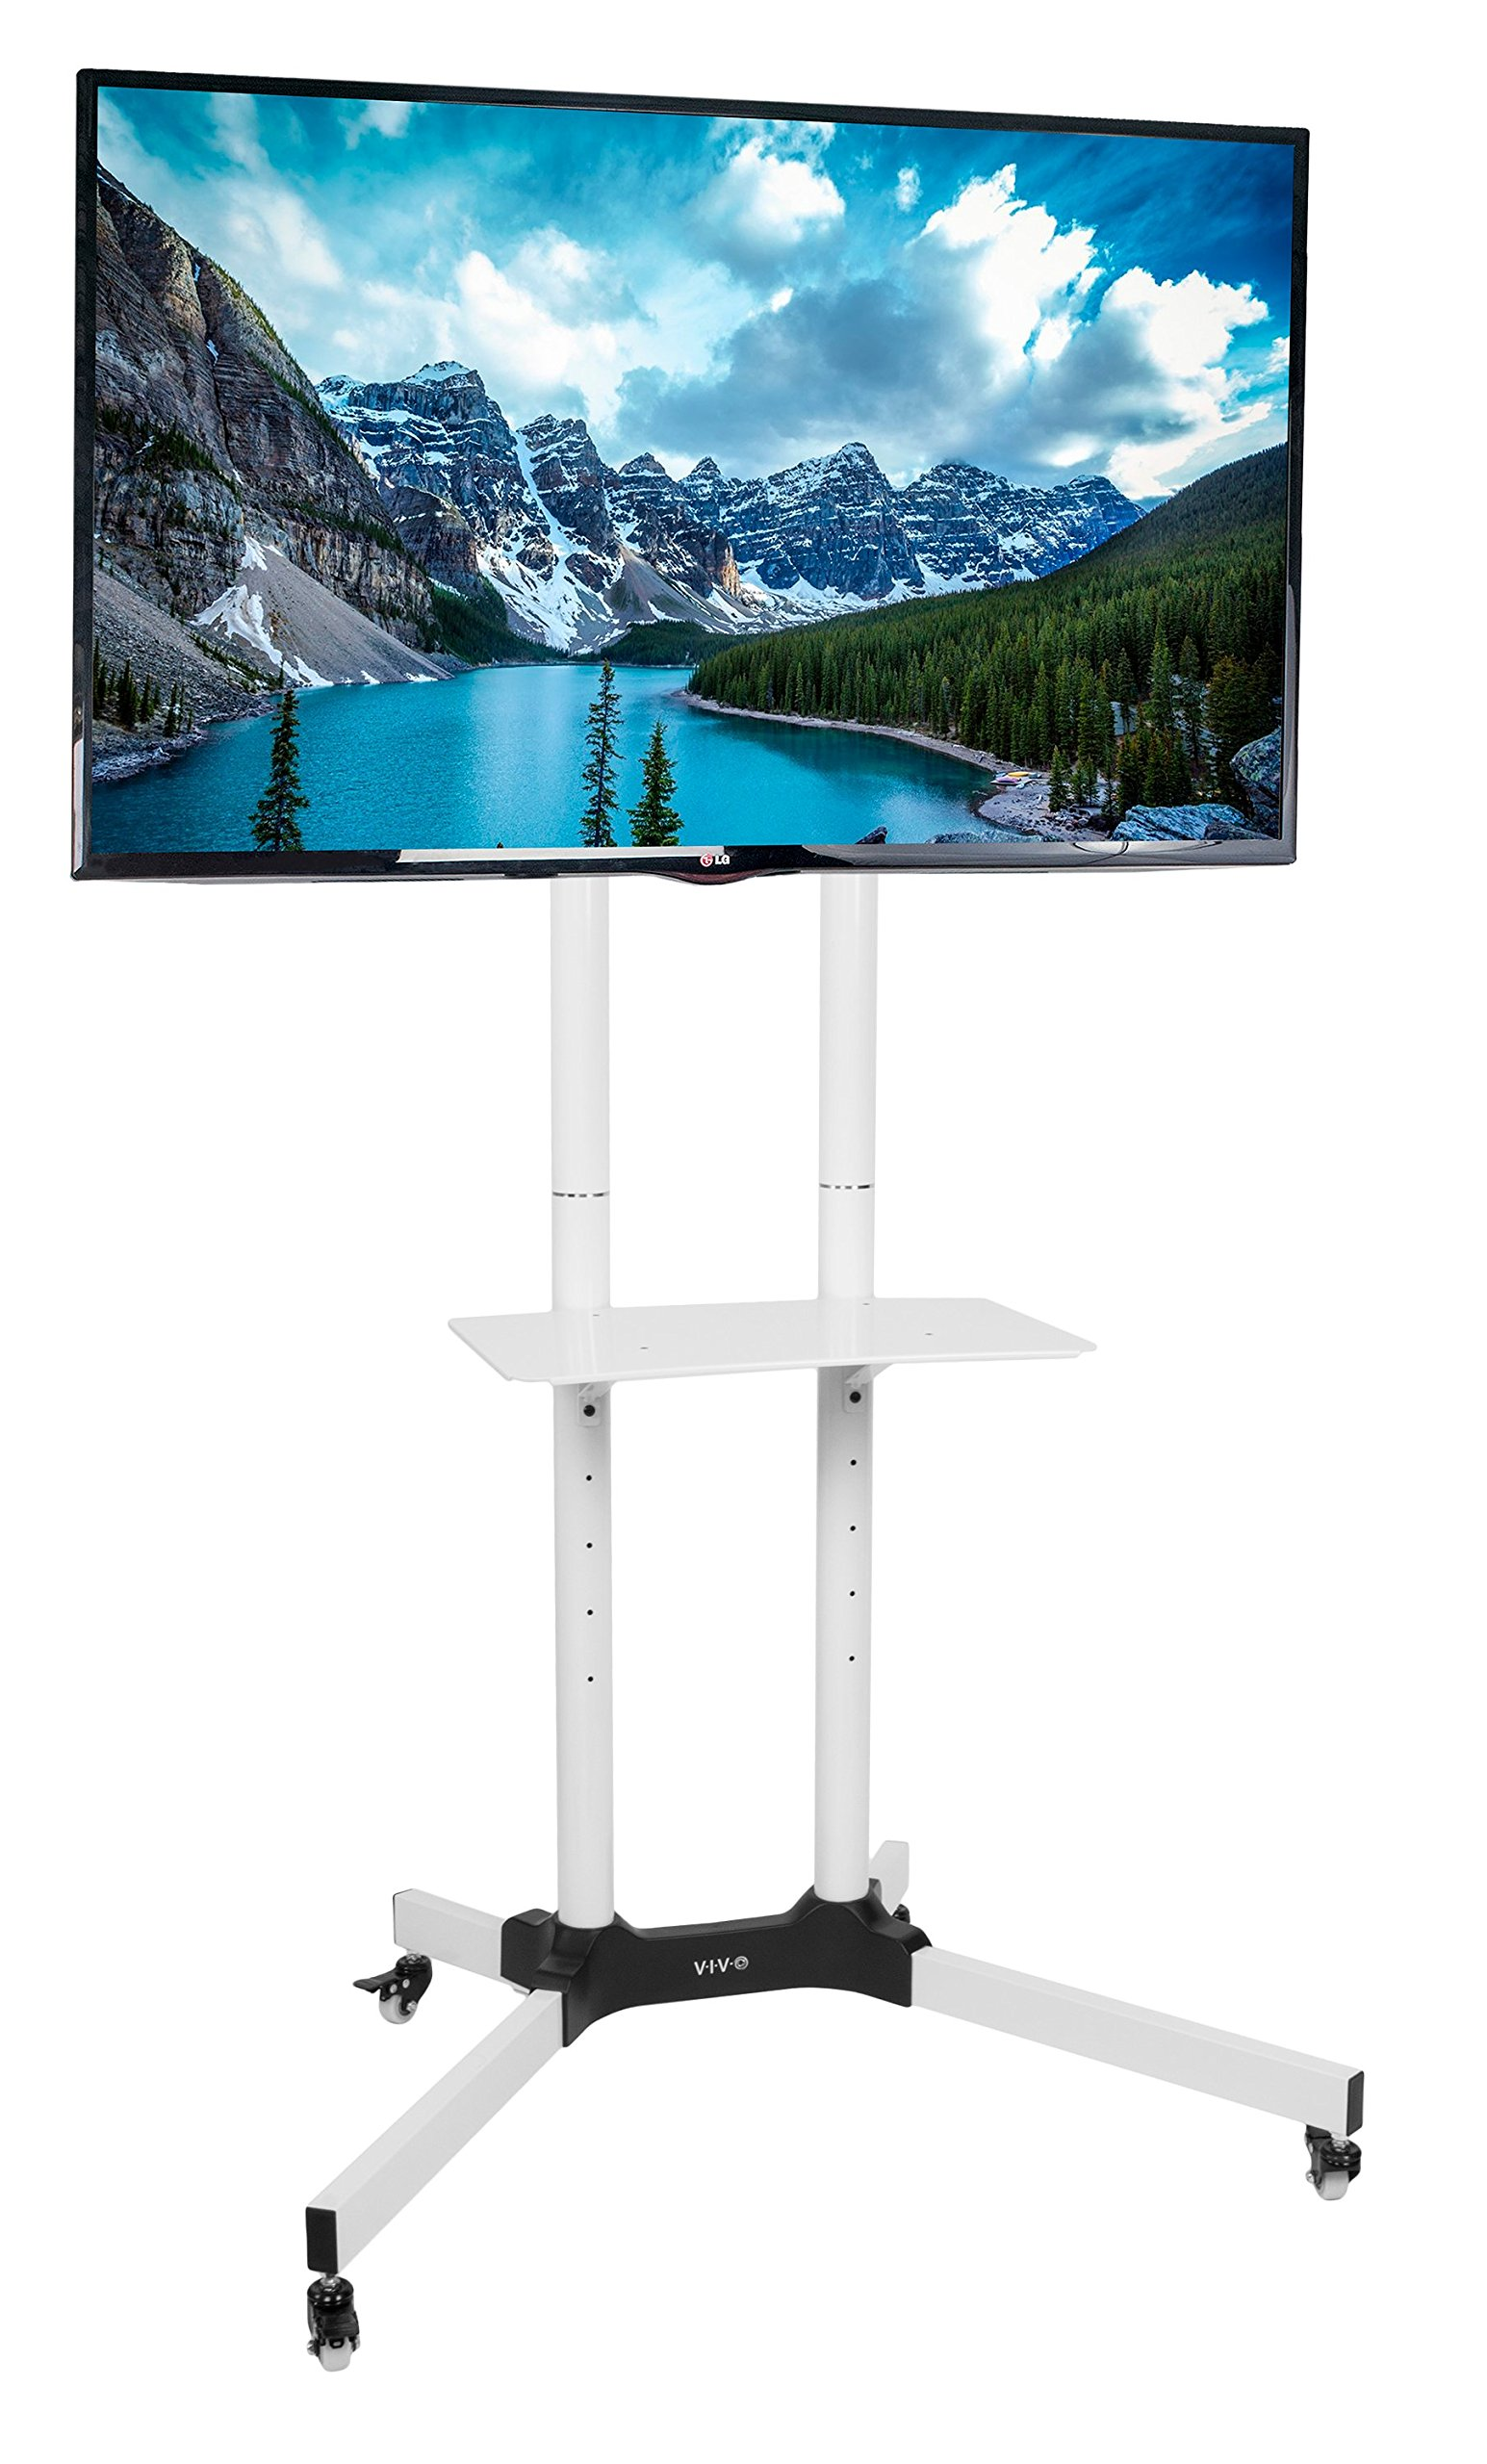 VIVO White Mobile TV Cart for 32'' to 65'' LCD LED Plasma Flat Panel Screens | Rolling TV Stand with Wheels (STAND-TV03W)